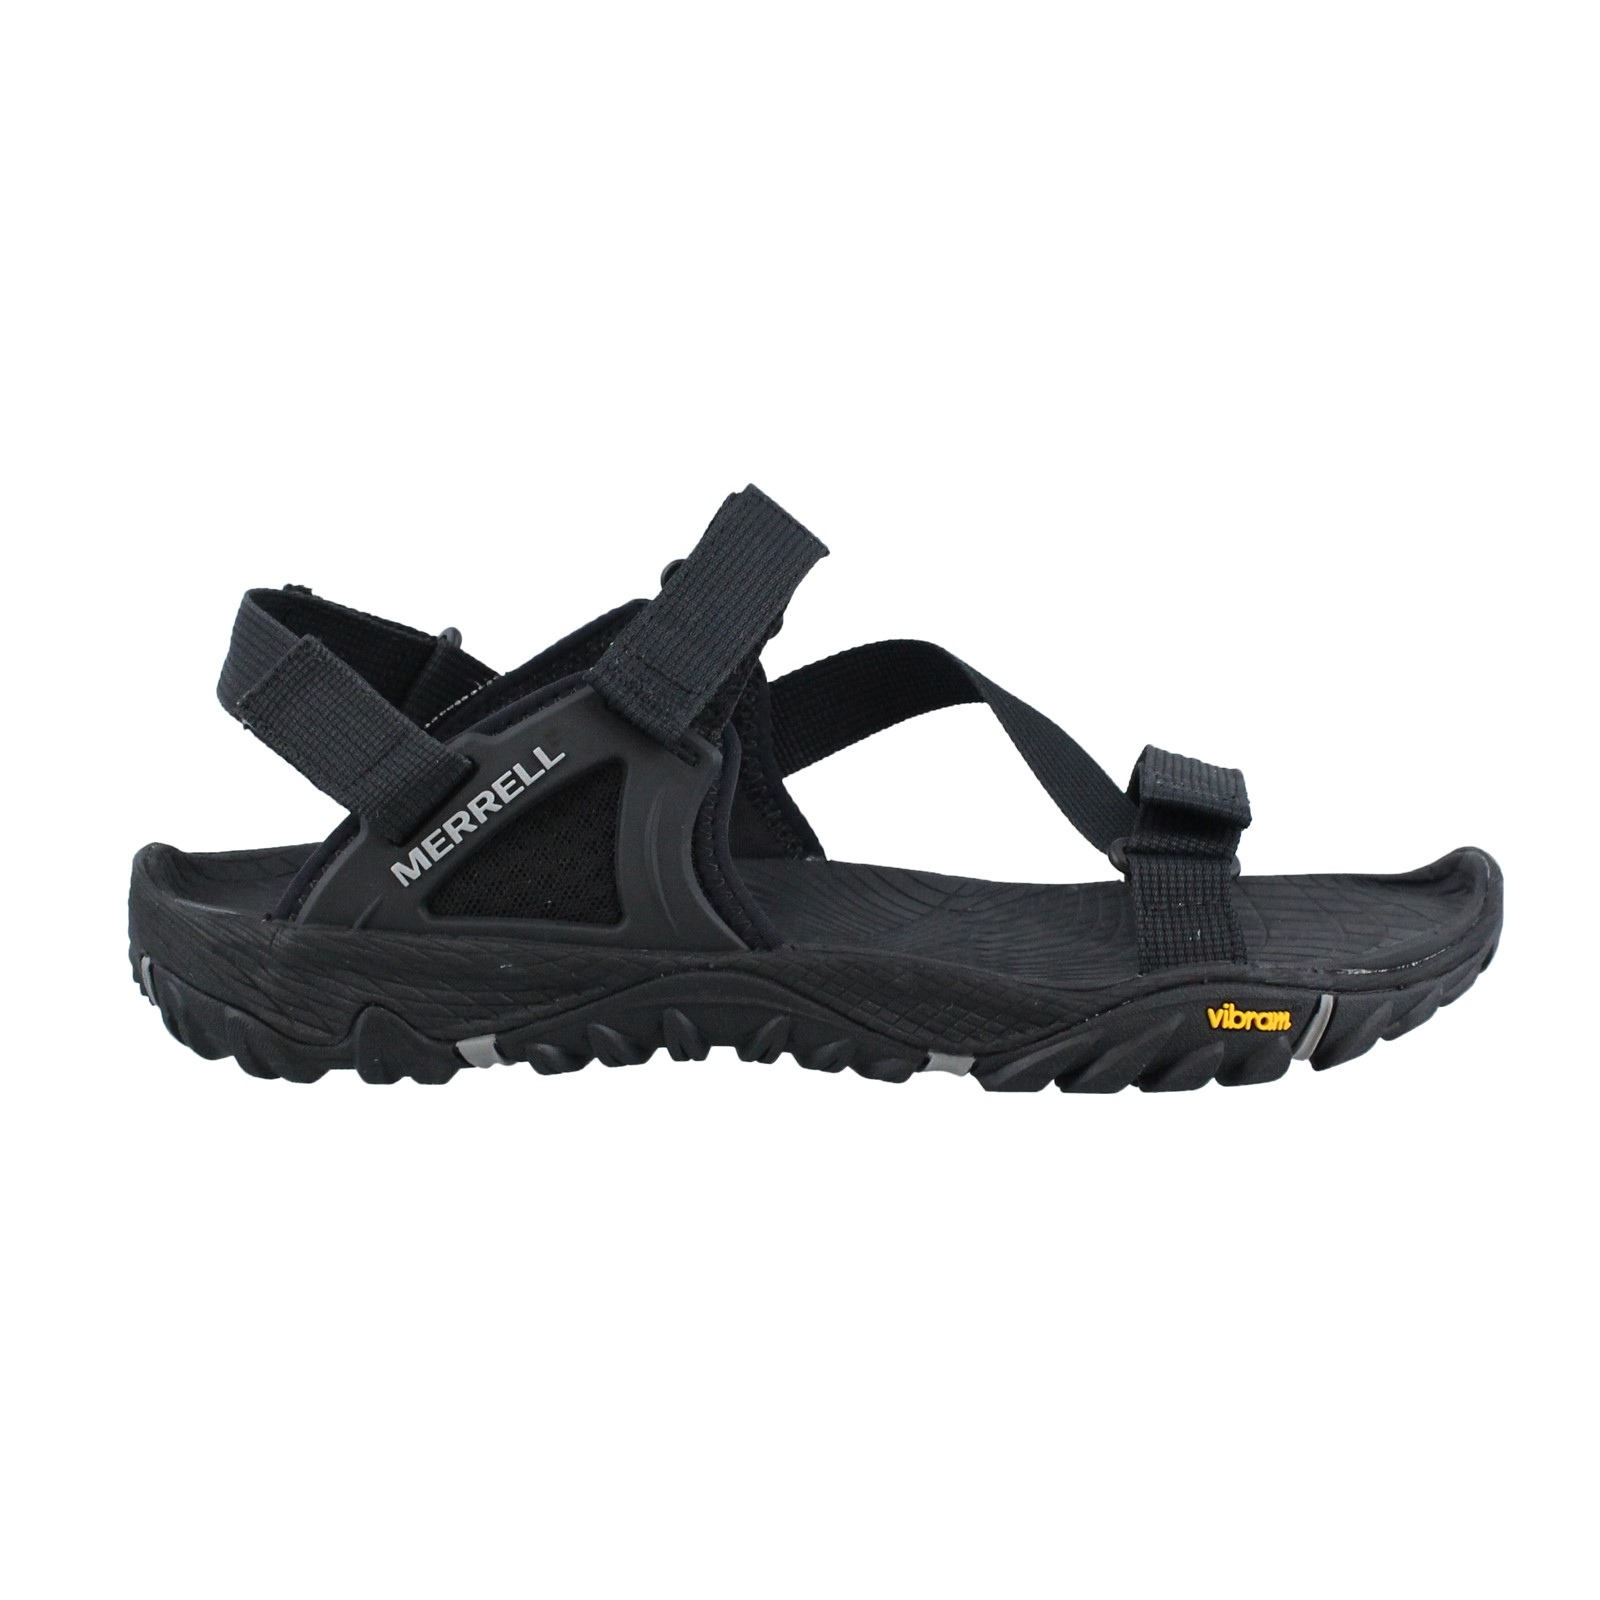 quality first limited guantity temperament shoes Men's Merrell, All Out Blaze Web Sandals